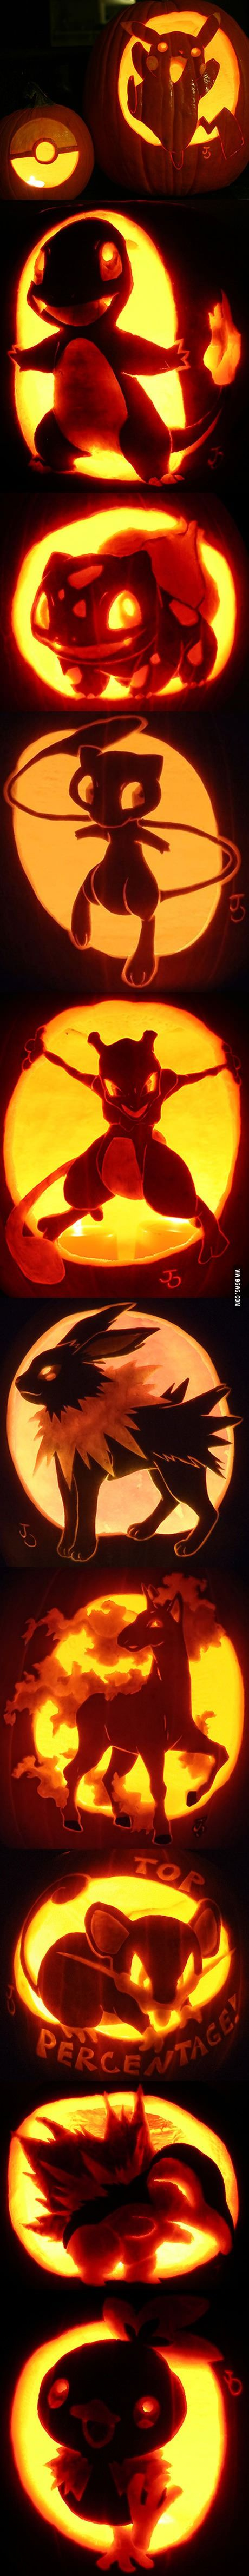 pokemon jack o lantern pumpkin art pumpkin art pokemon and